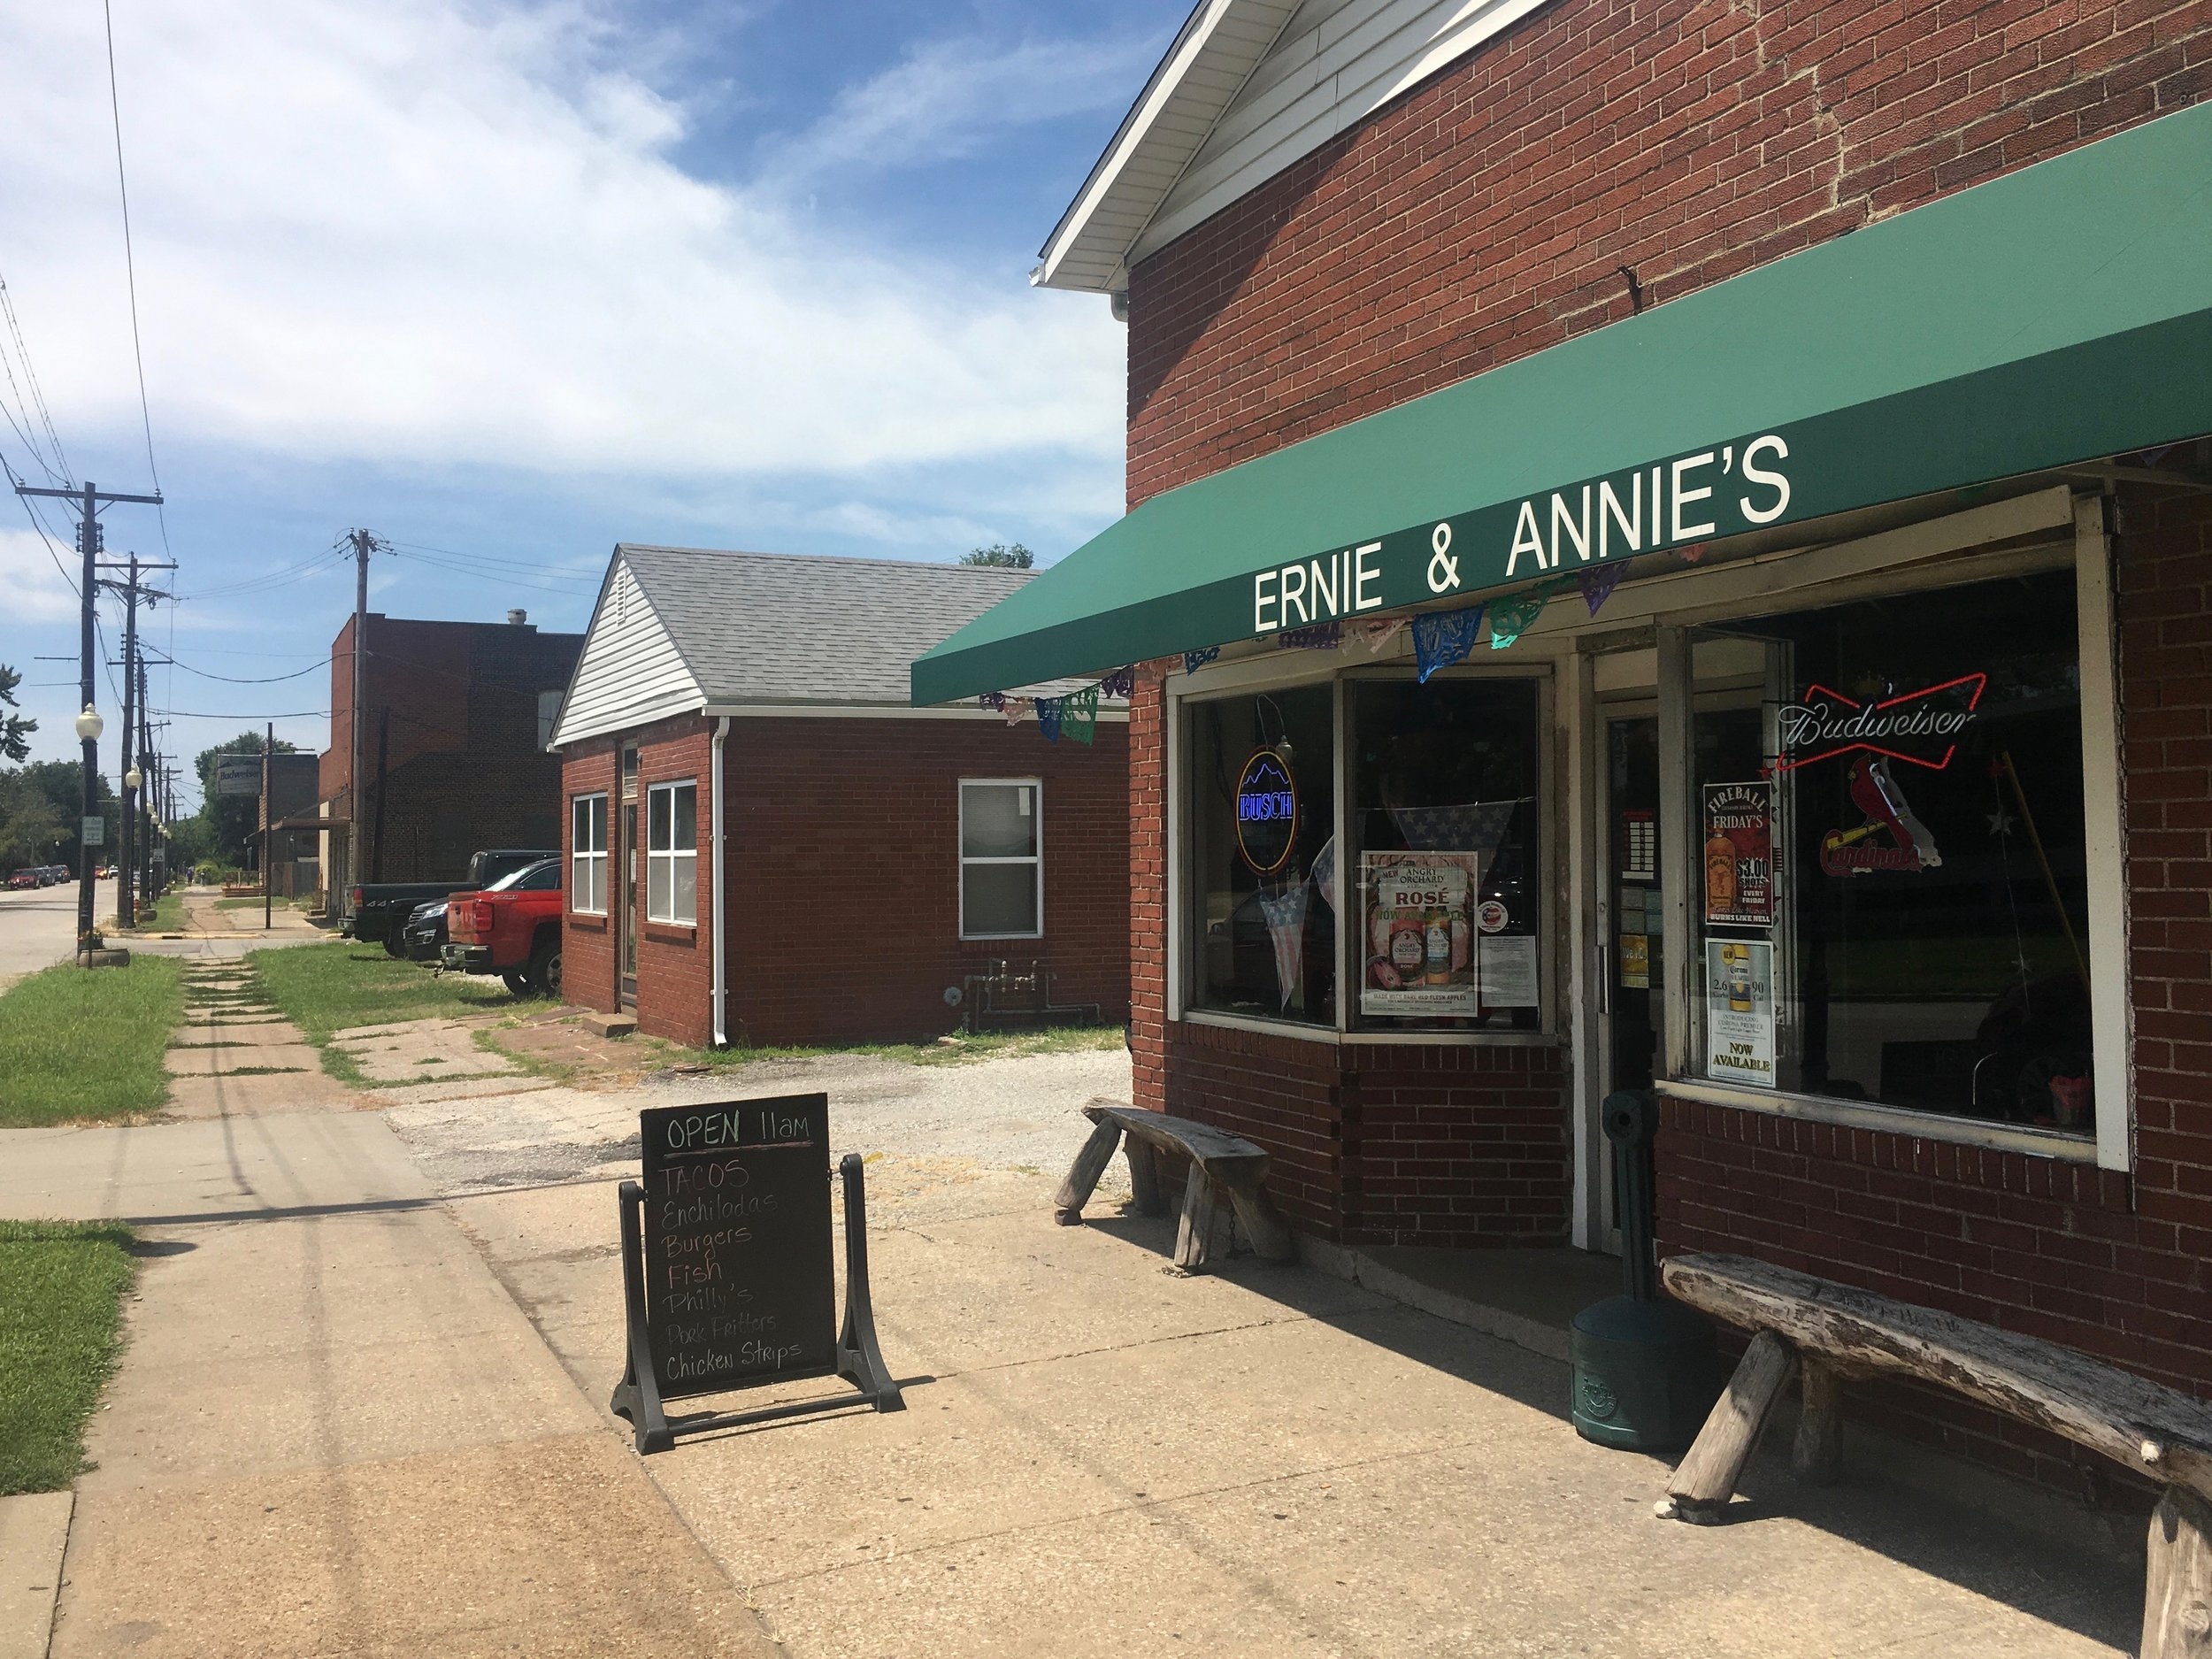 Ernie & Annie's in Granite City: one of the places along the Great River Road specializing in the local delicacy of deep-fried tacos. (One Illinois/Zachary Sigelko)